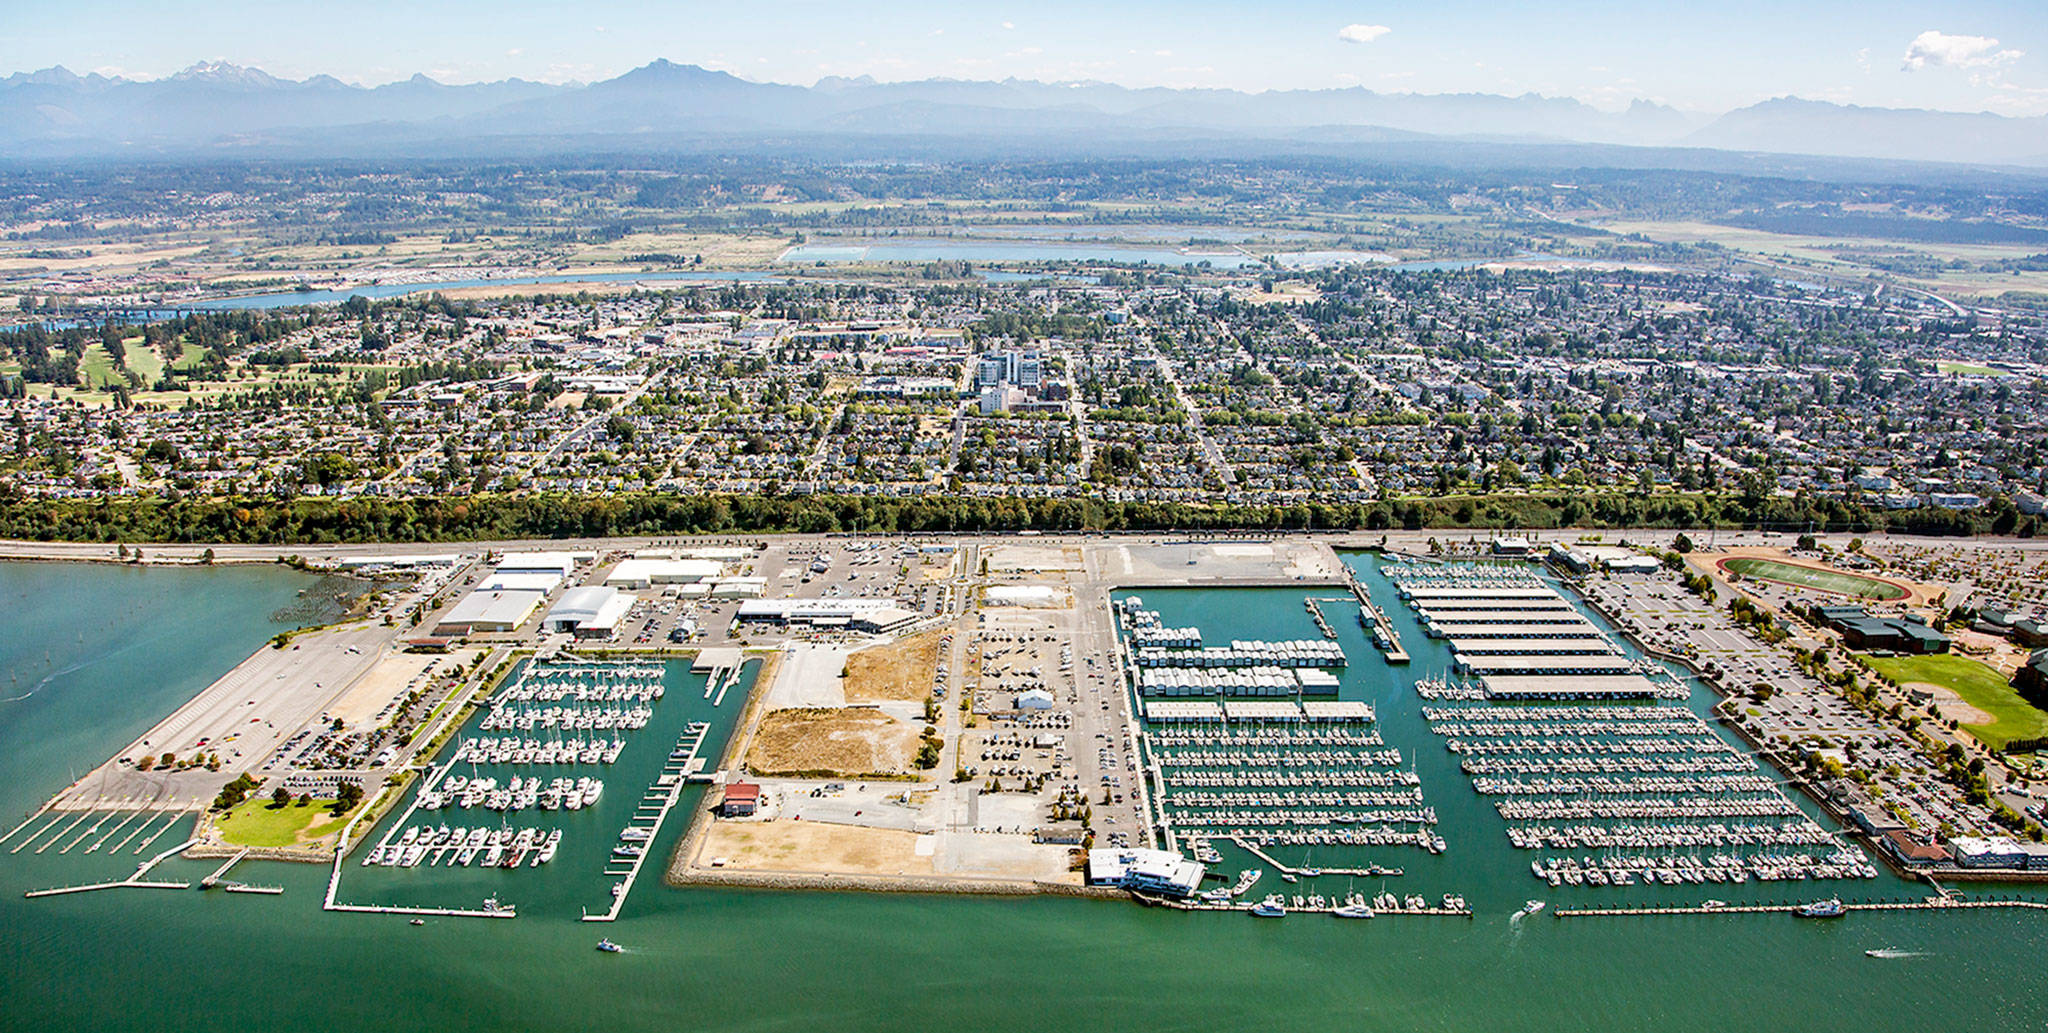 The Port of Everett marina is the biggest public marina on the West Coast. (Port of Everett)